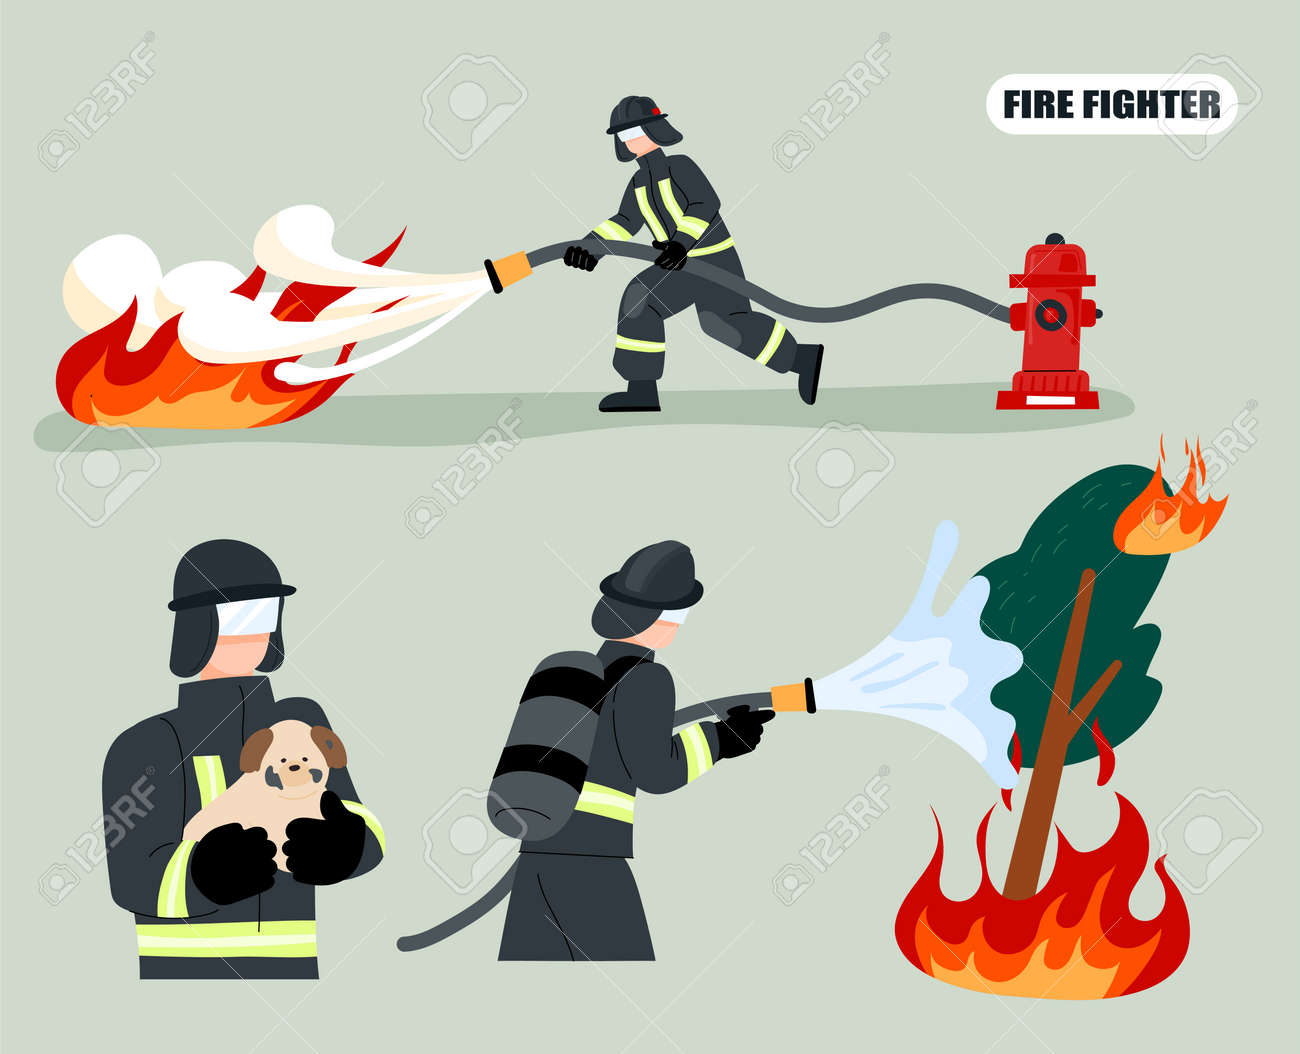 Firefighter putting out a fire with a hose connected to a hydrant. Firefighters rescued the dog. flat design style minimal vector illustration. - 172561352